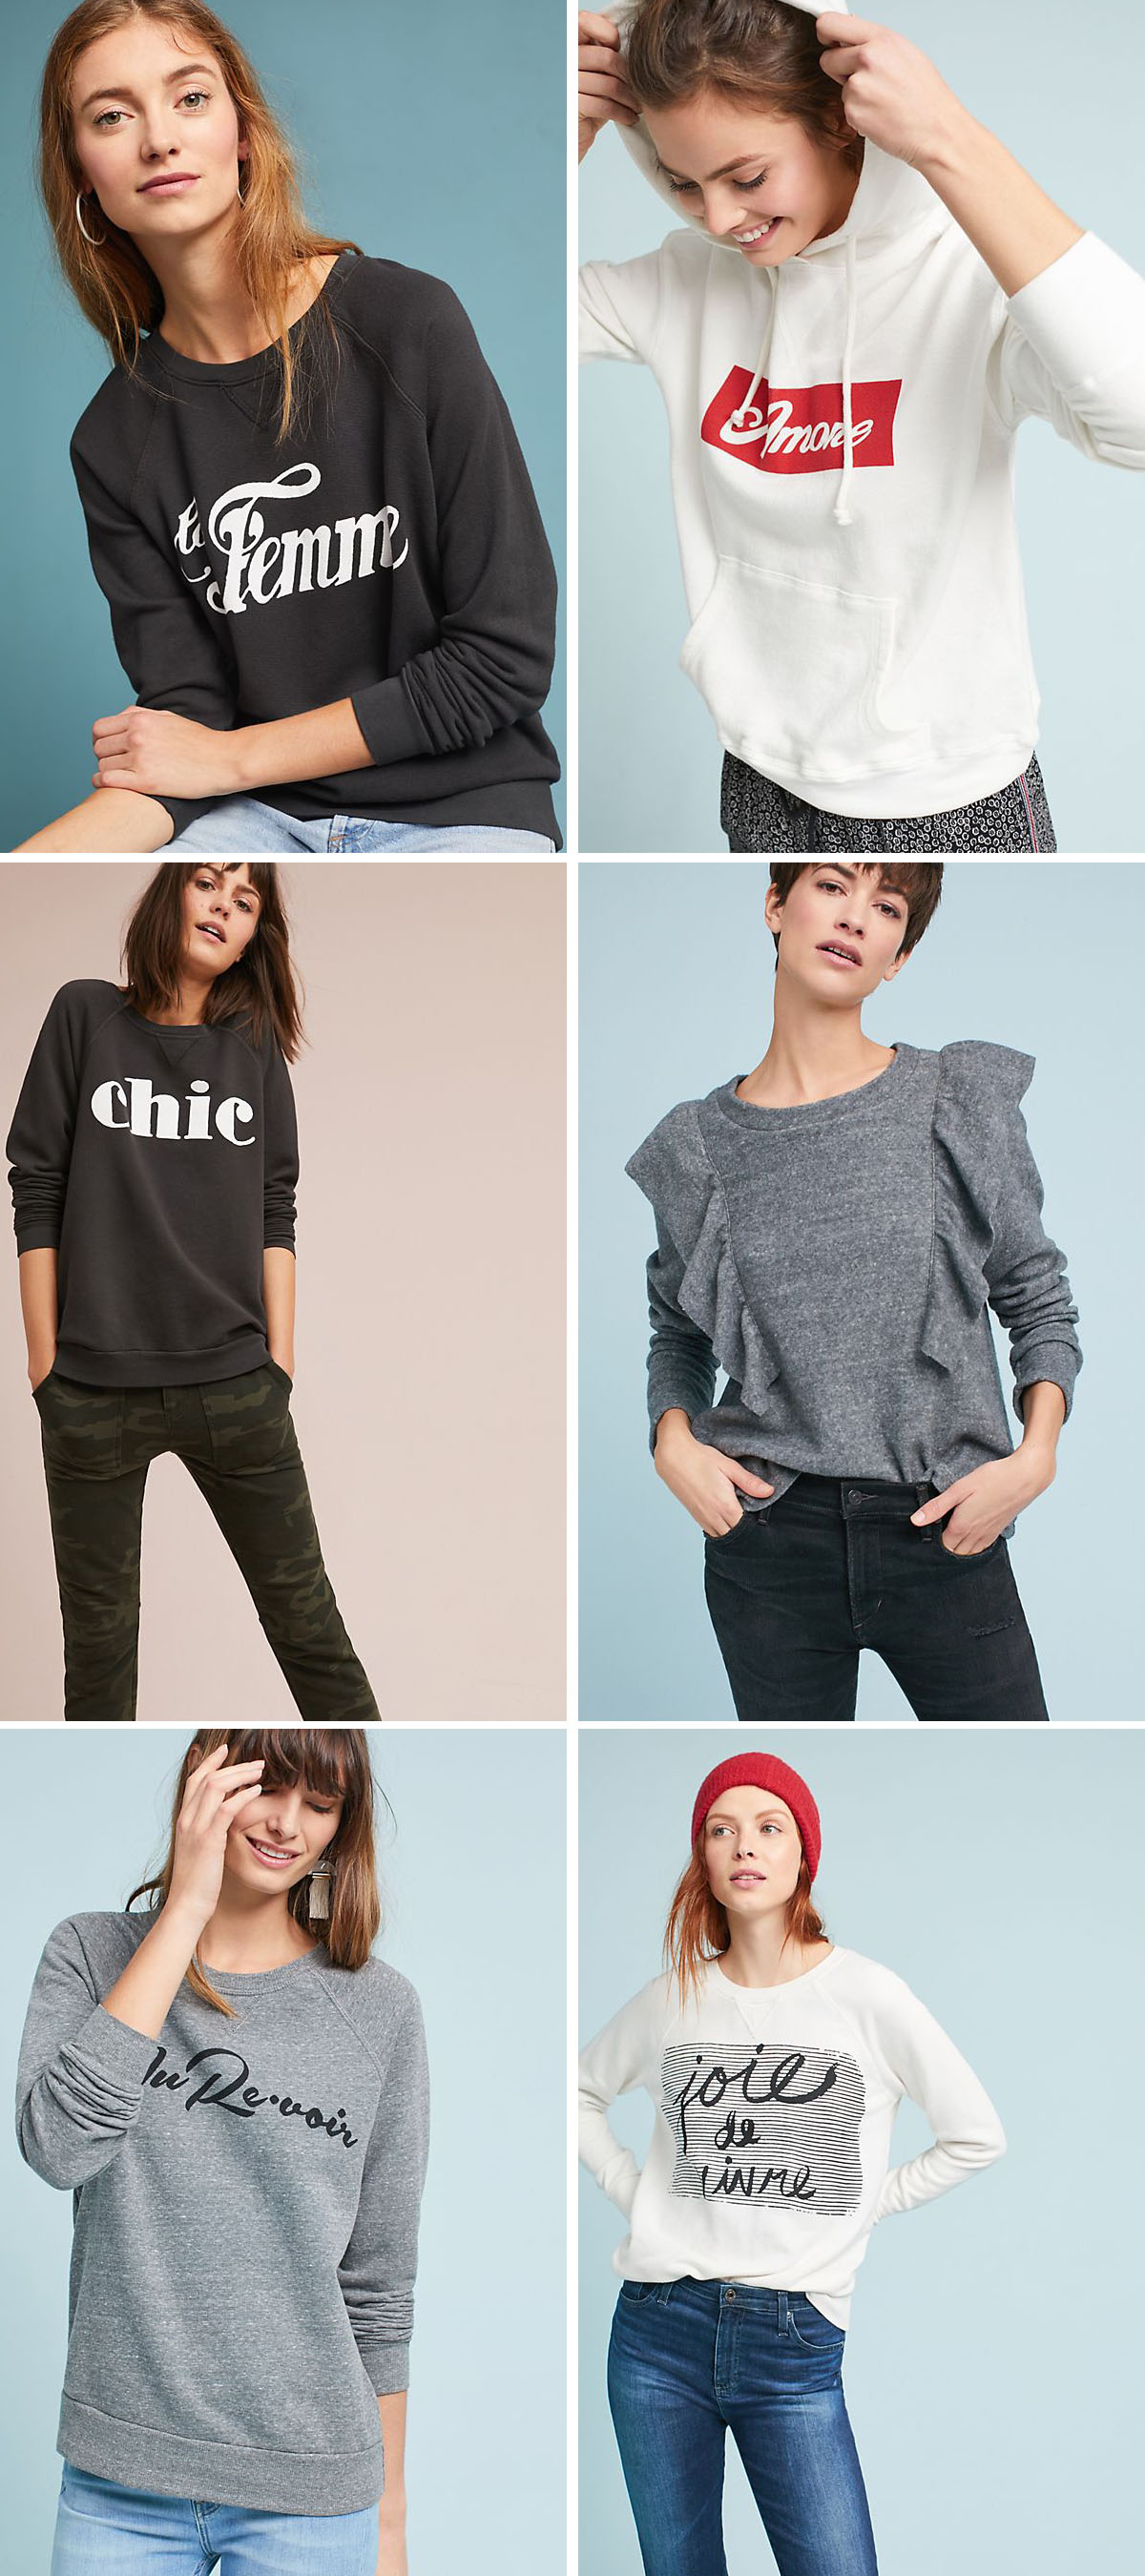 Chic Sweatshirts on Trend for 2018